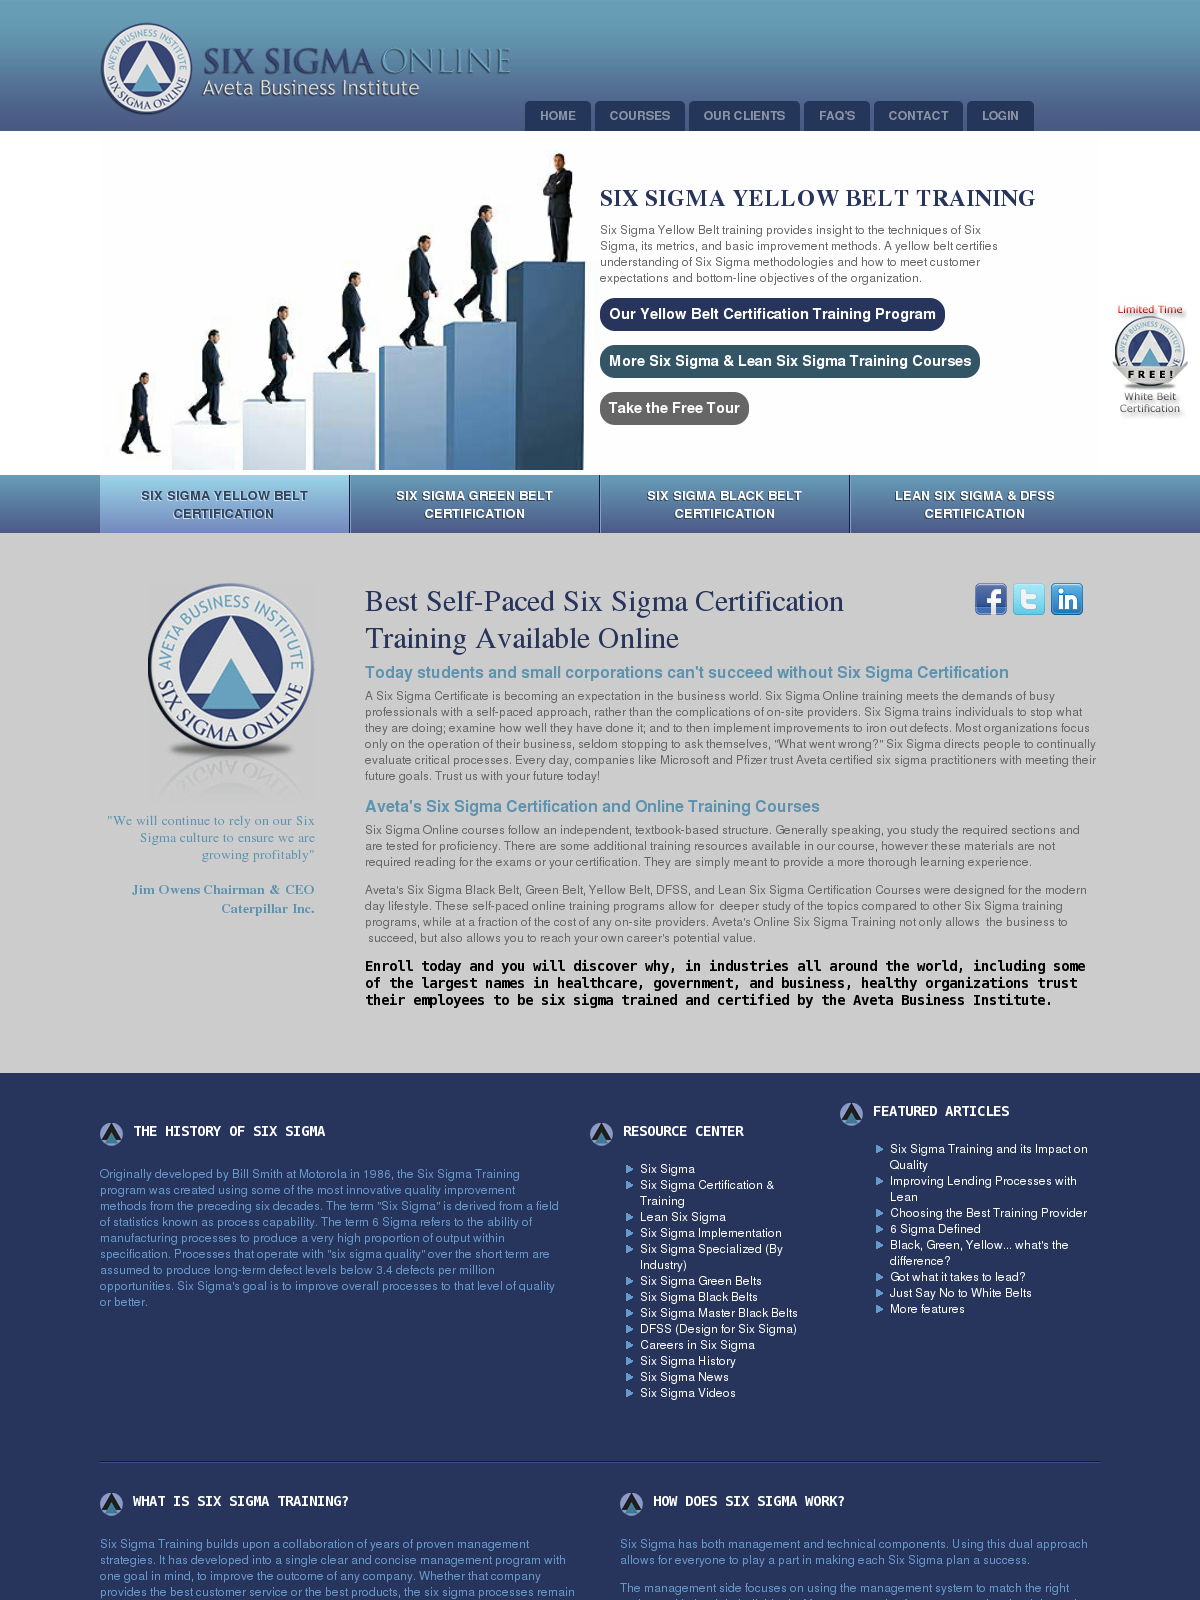 Online Six Sigma Certification Training And Lean 6 Sigma Bpi